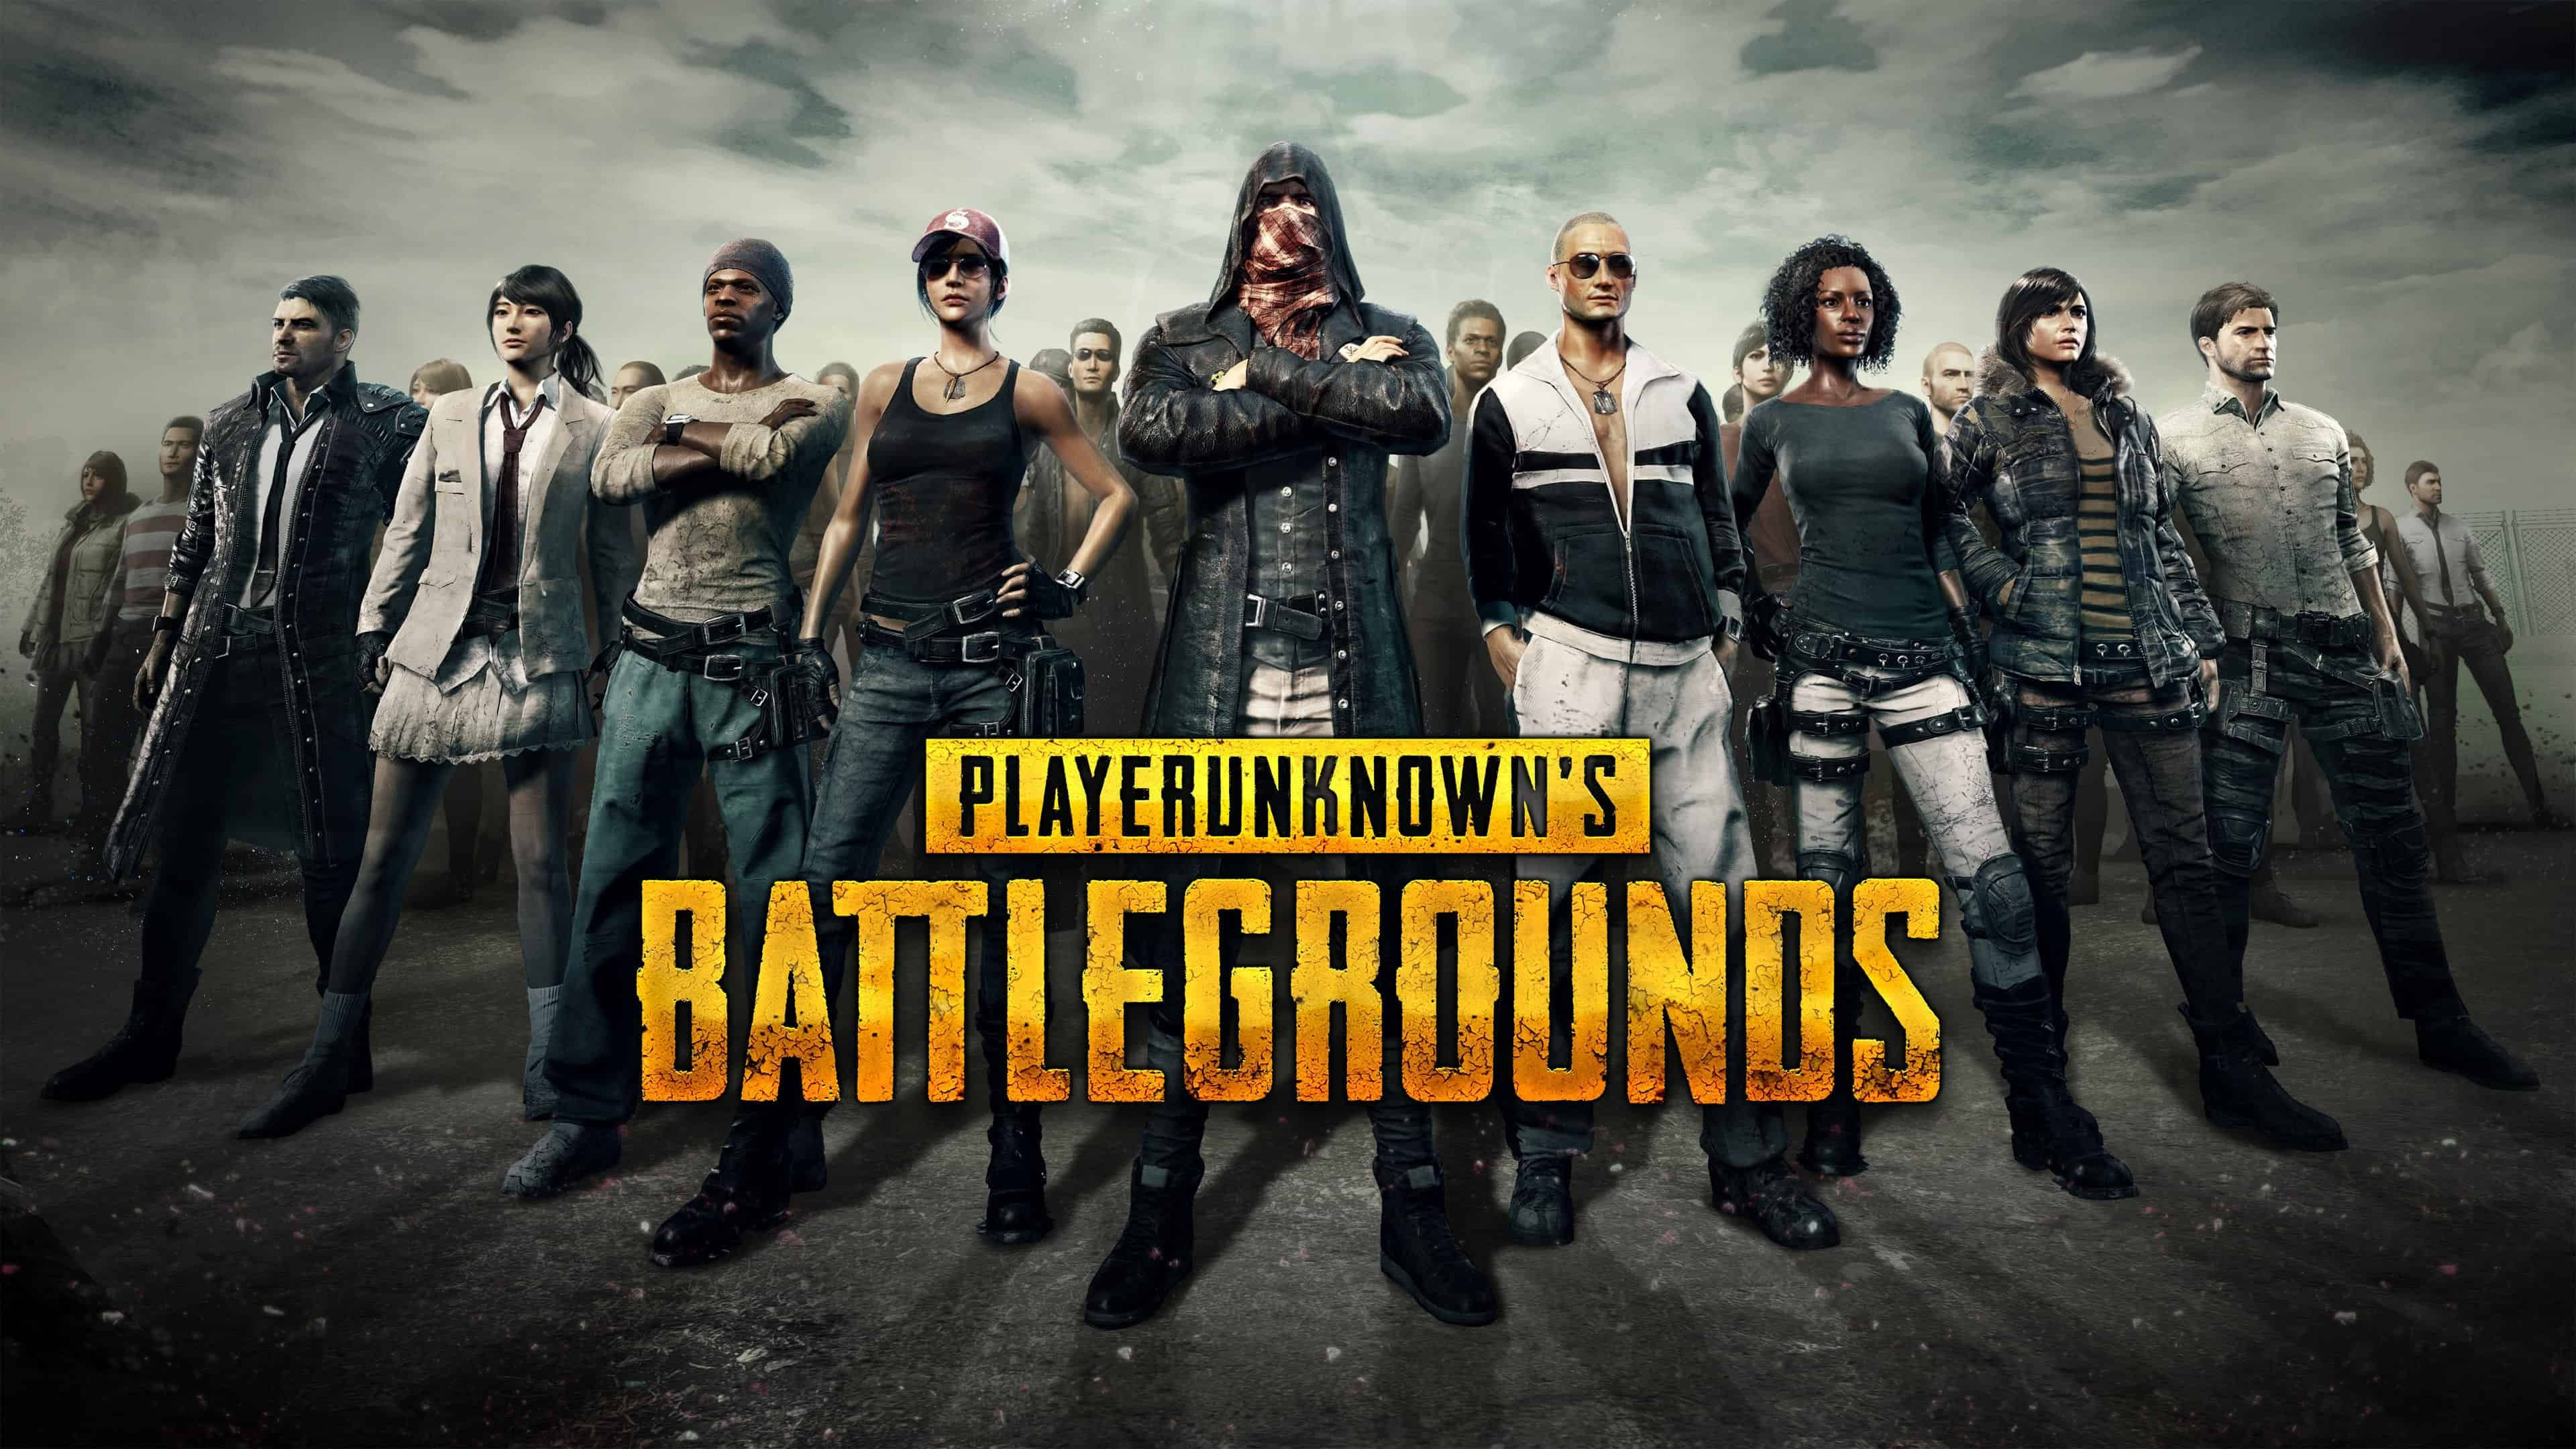 Player Unknown's Battlegrounds (PUBG) 4K Pubg wallpaper phone, pubg